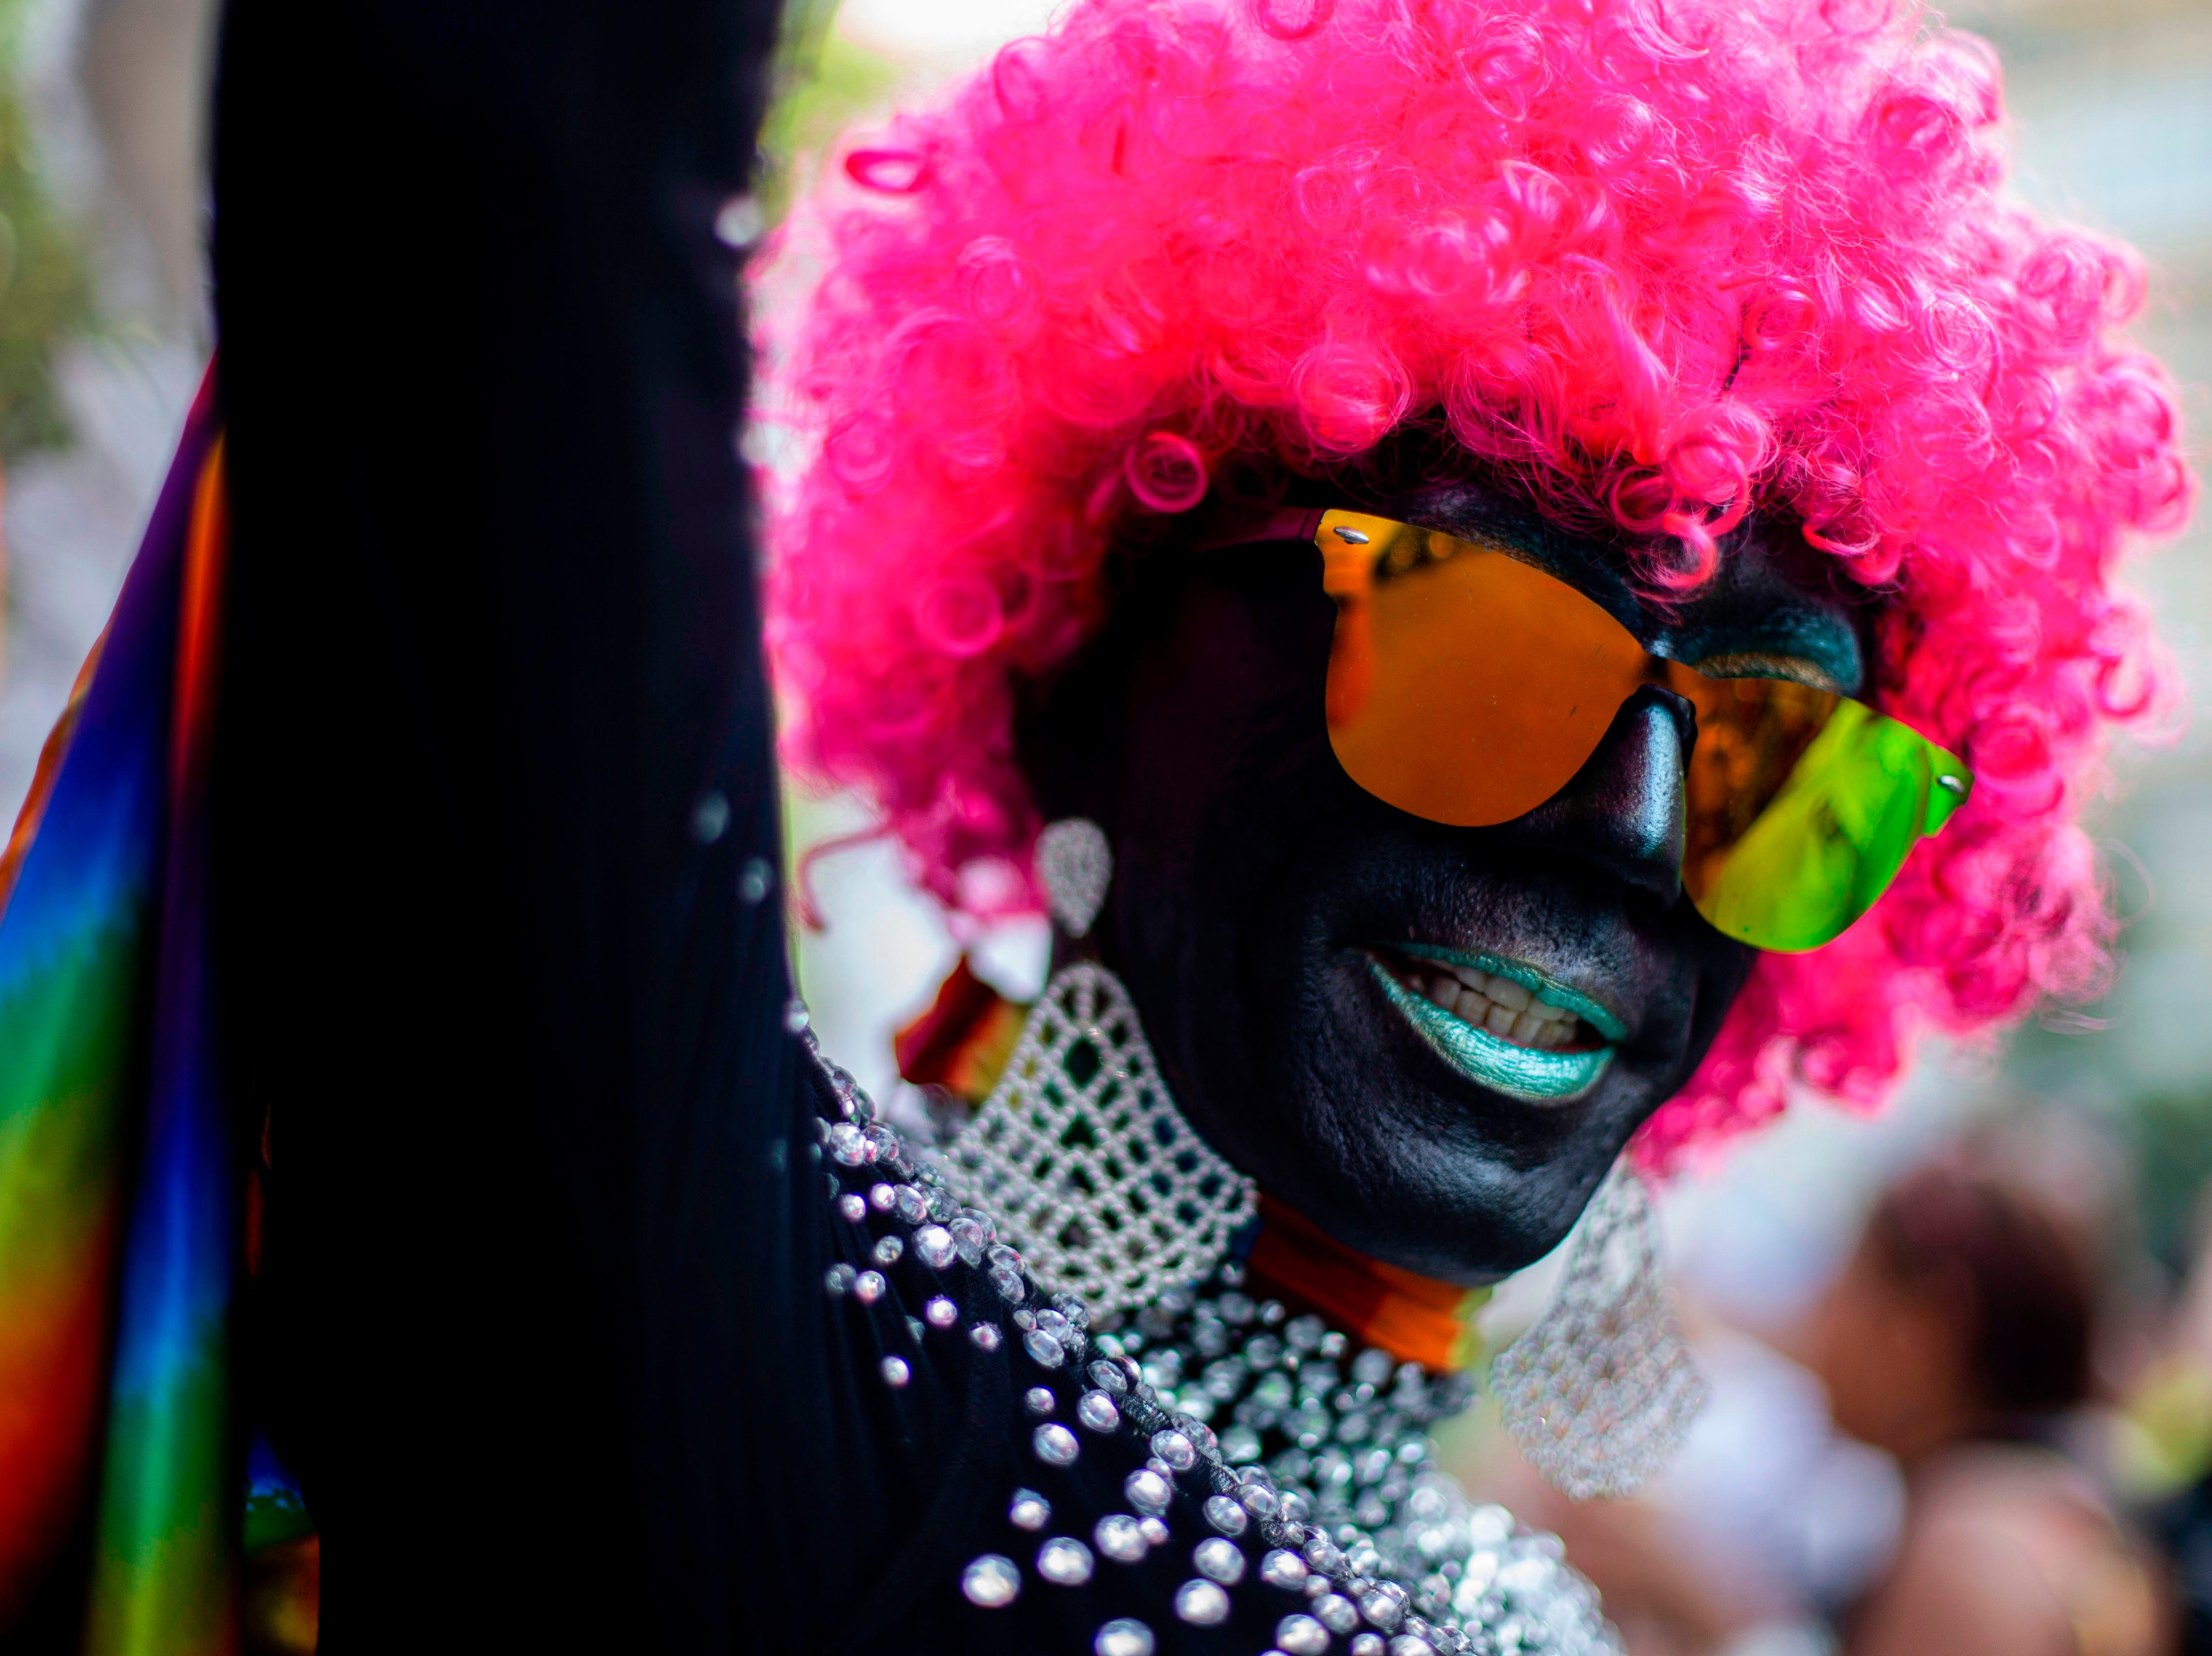 A reveller is pictured during the Gay Pride parade at Copacabana beach in Rio de Janeiro, Brazil on Sept. 30, 2018.